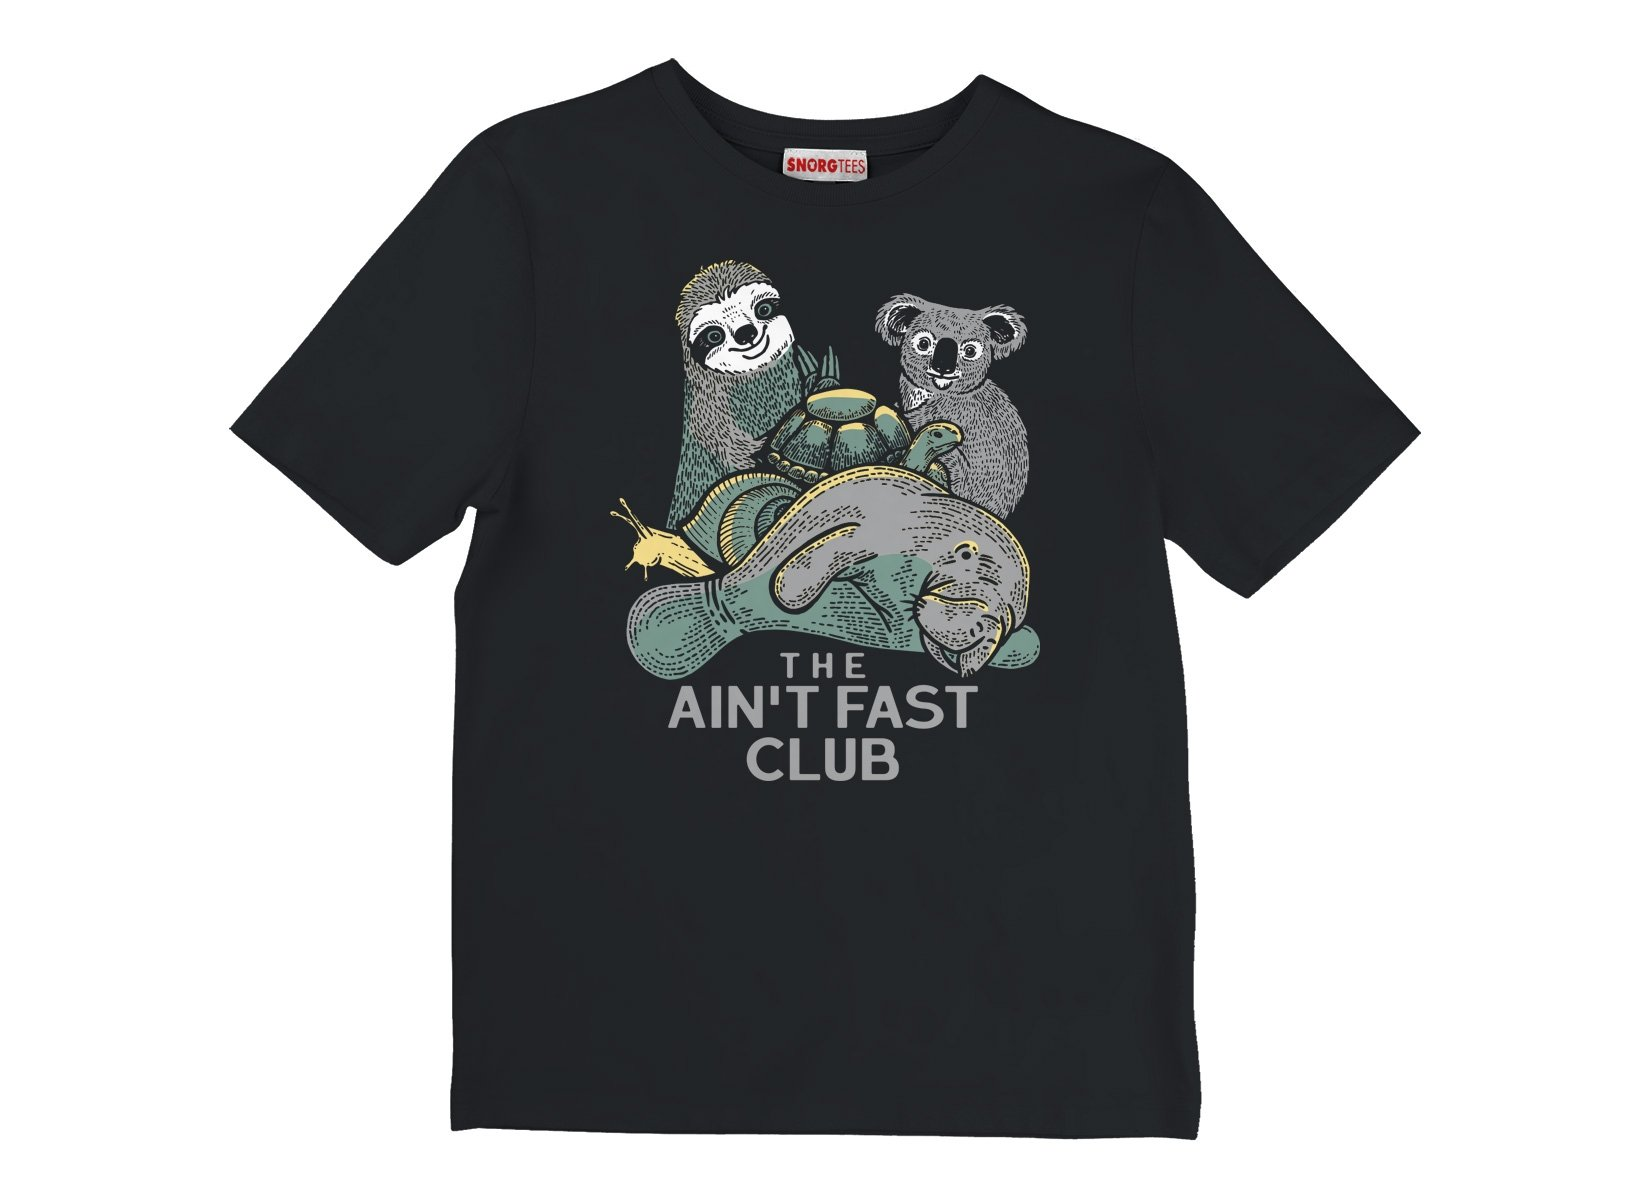 The Ain't Fast Club on Kids T-Shirt